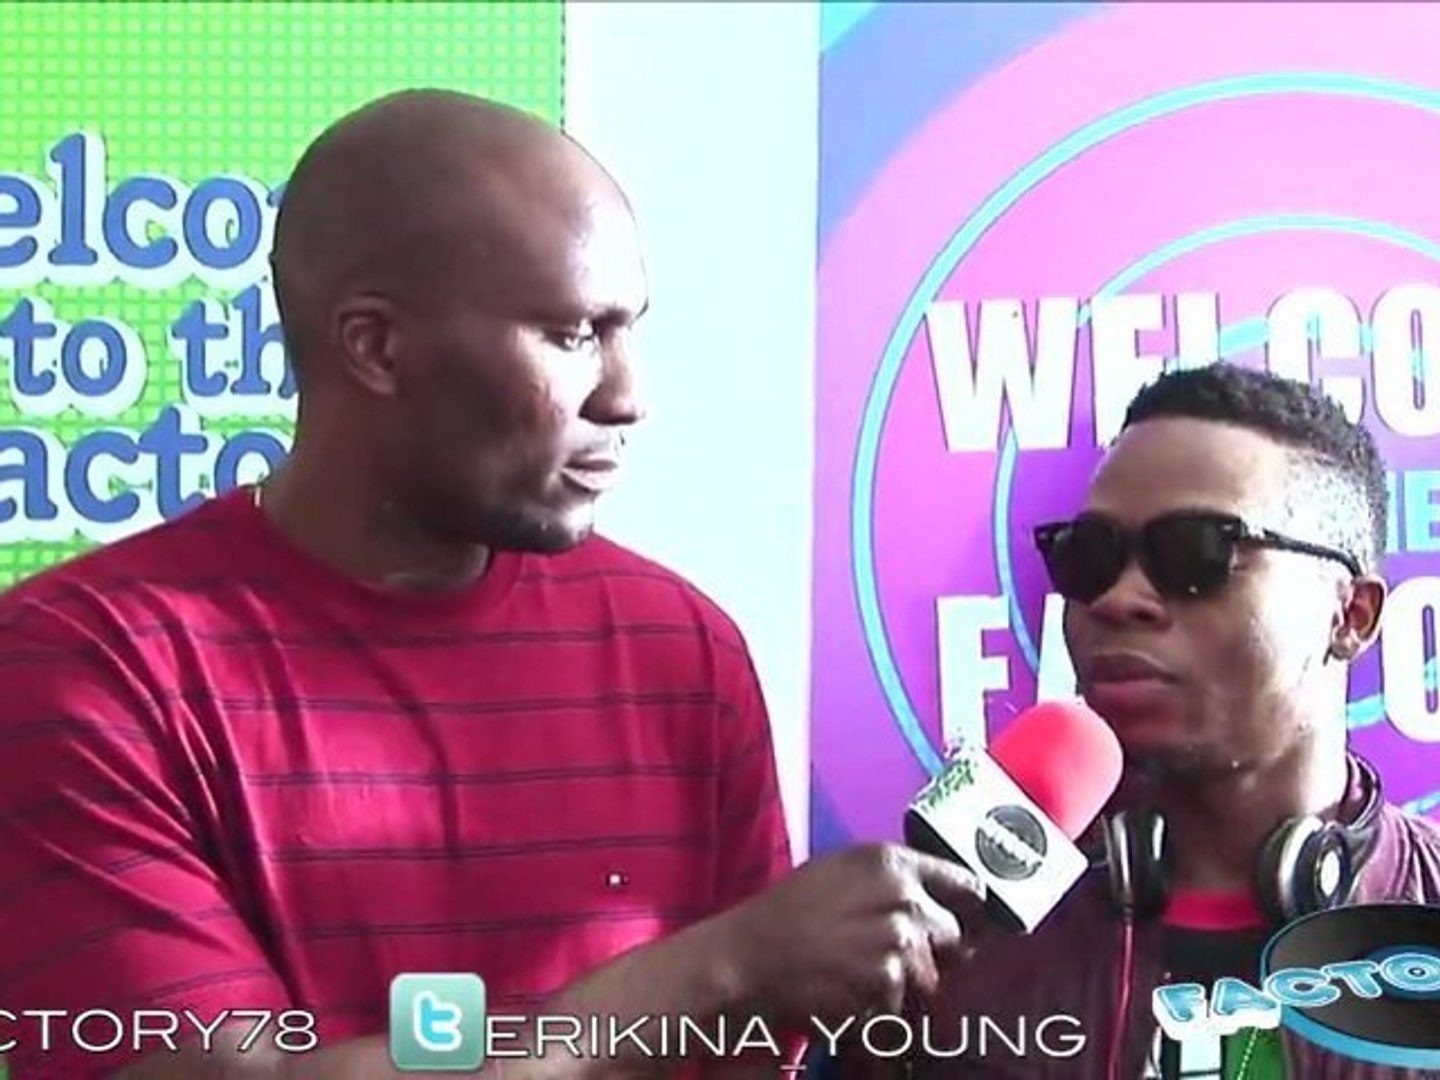 Olamide freestyle and Interview with Factory78